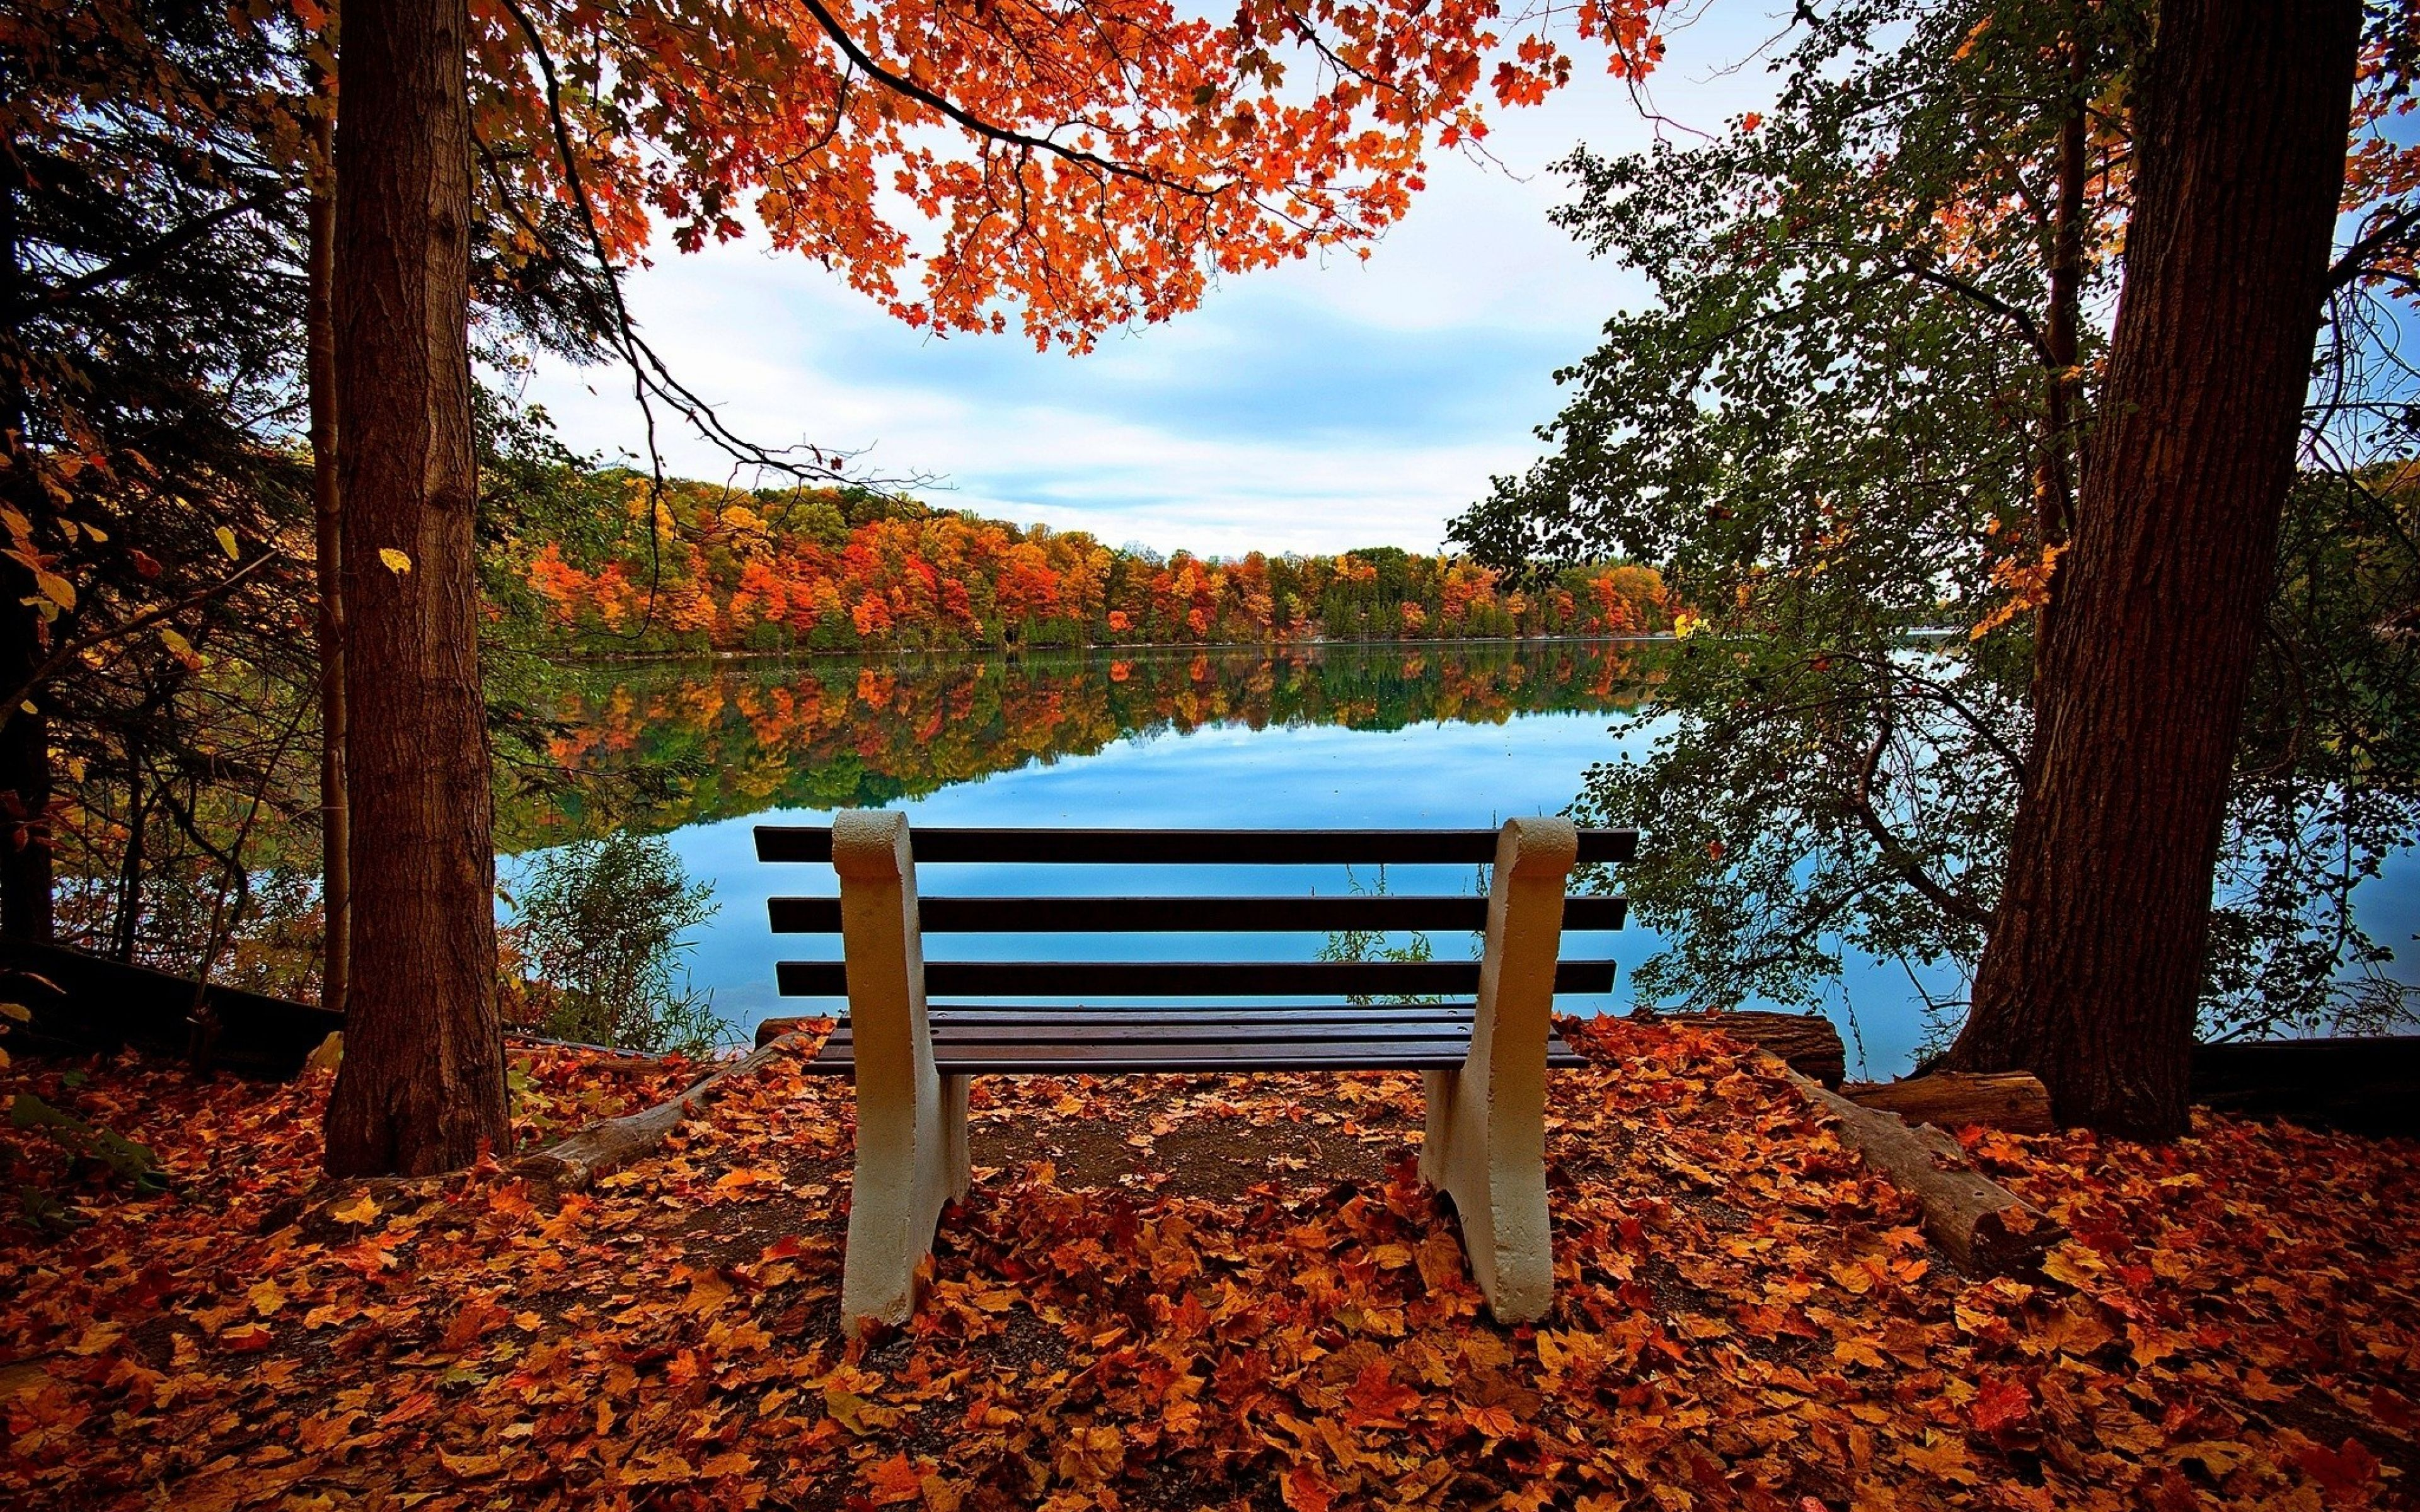 3840x2400 Wallpaper Bench Autumn River Lake Trees Schone Landschaften Herbst Spruch Fotocollage